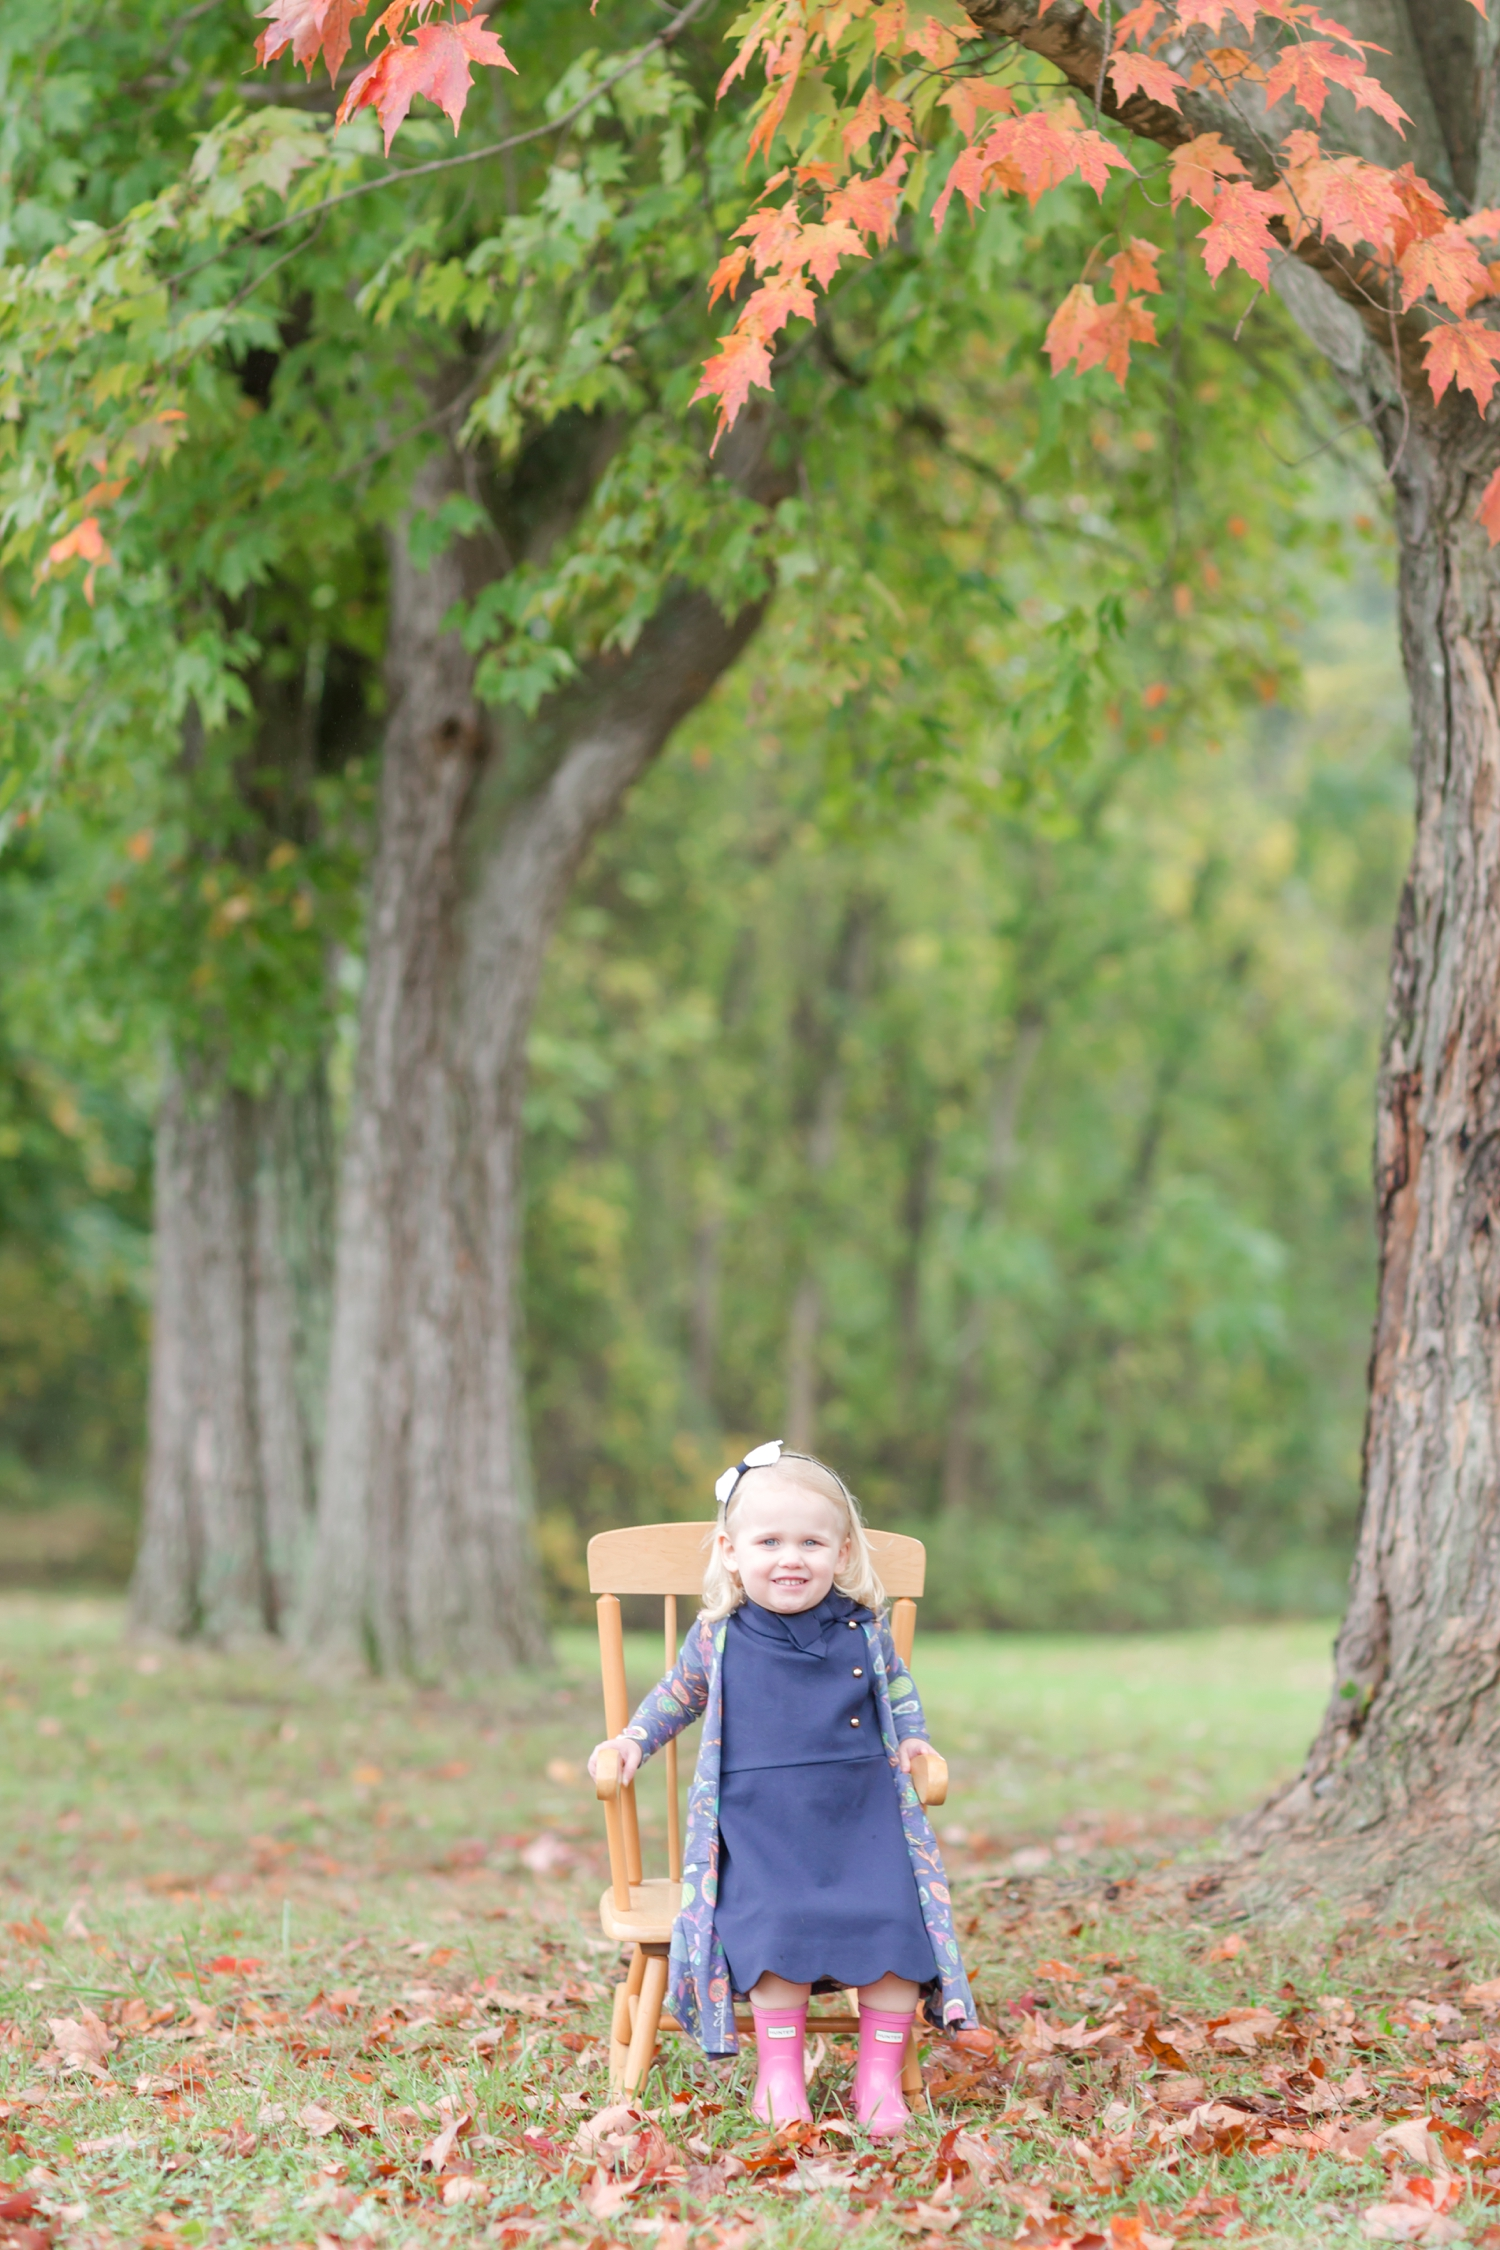 Sadie wanted some pictures in the rocking chair too!